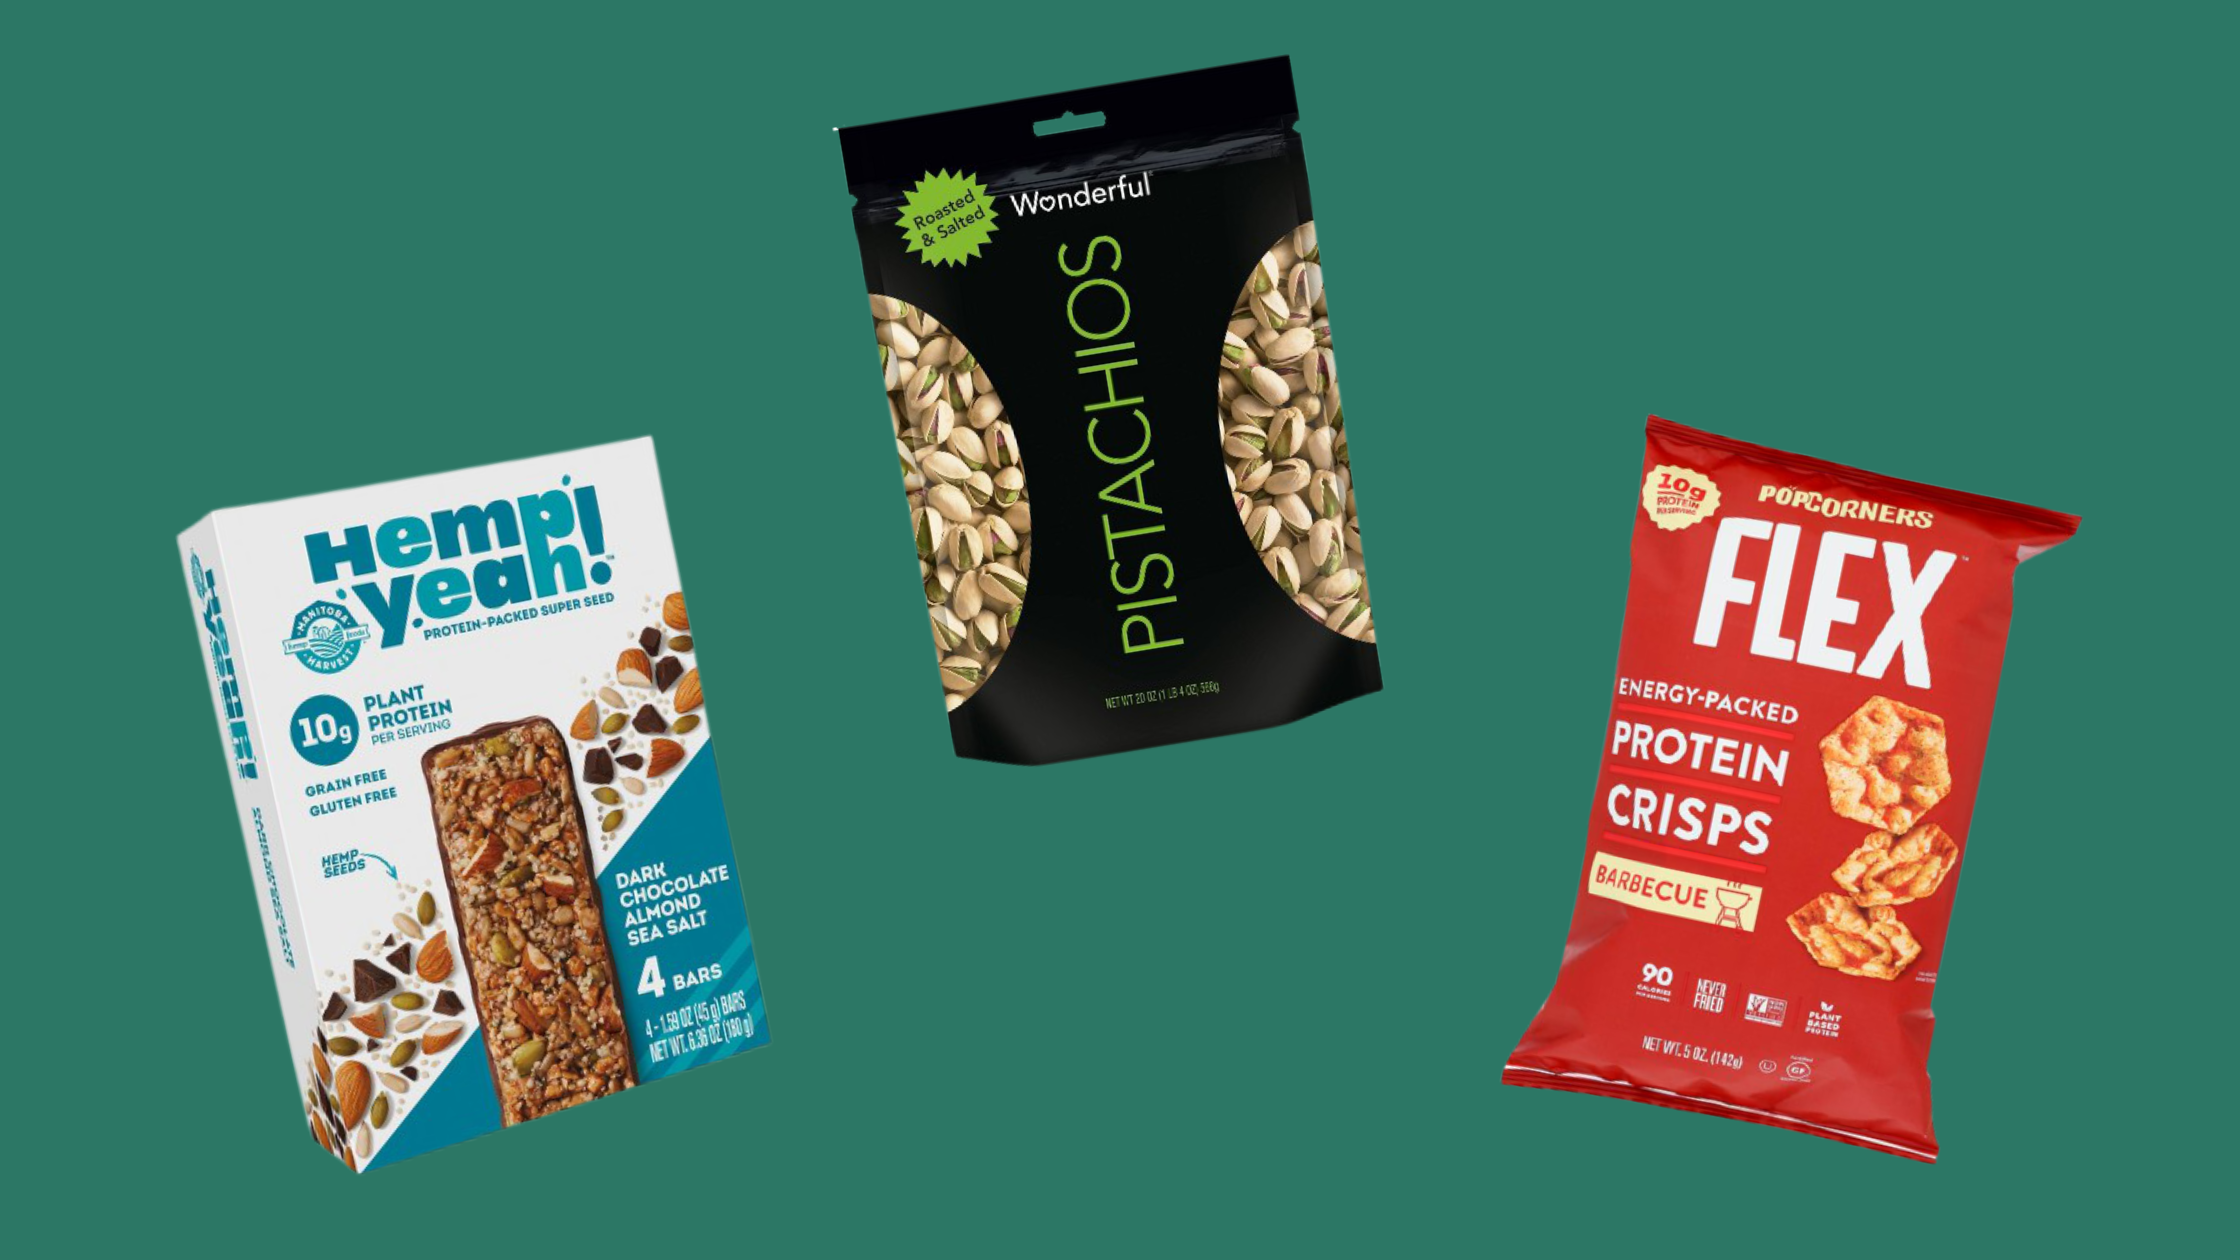 11 Best Portable High Protein Vegan Snacks to Eat During Your Busy Day